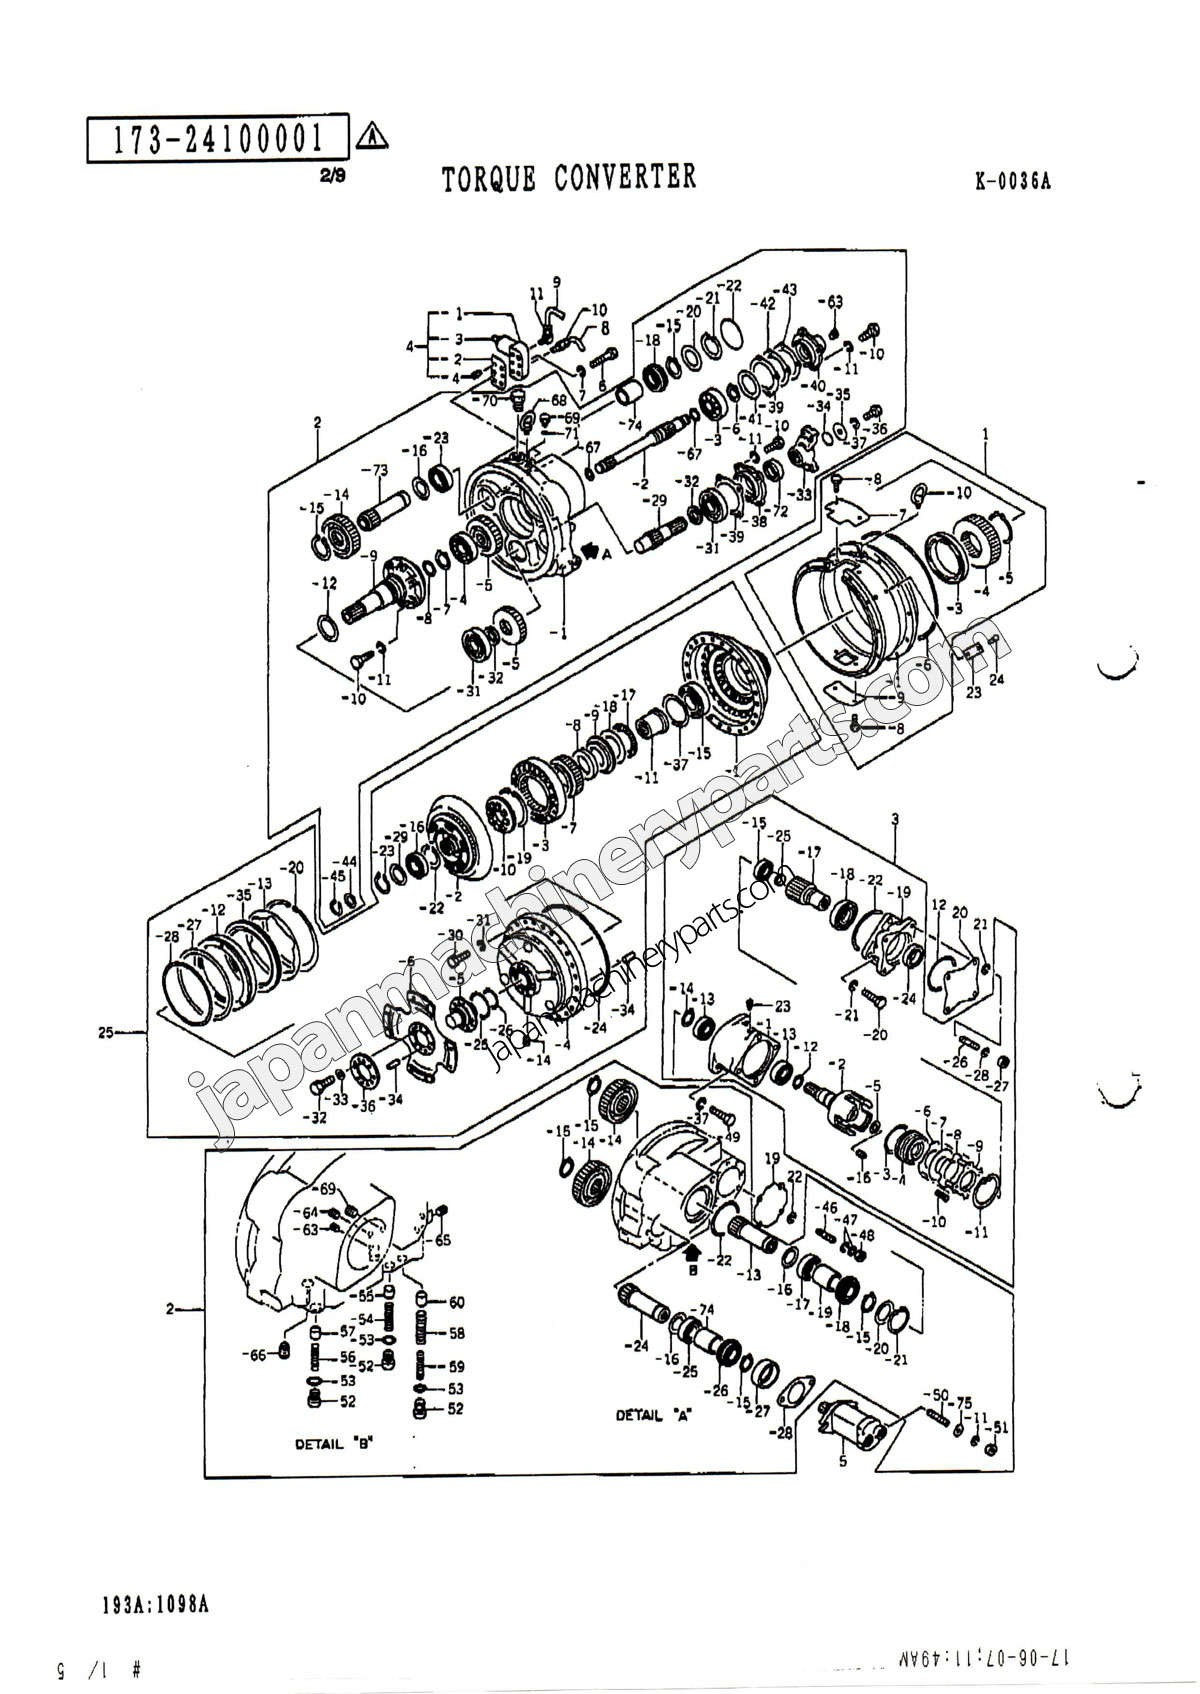 Torque Converter Diagram Parts for Kato Kr 25h V Of Torque Converter Diagram